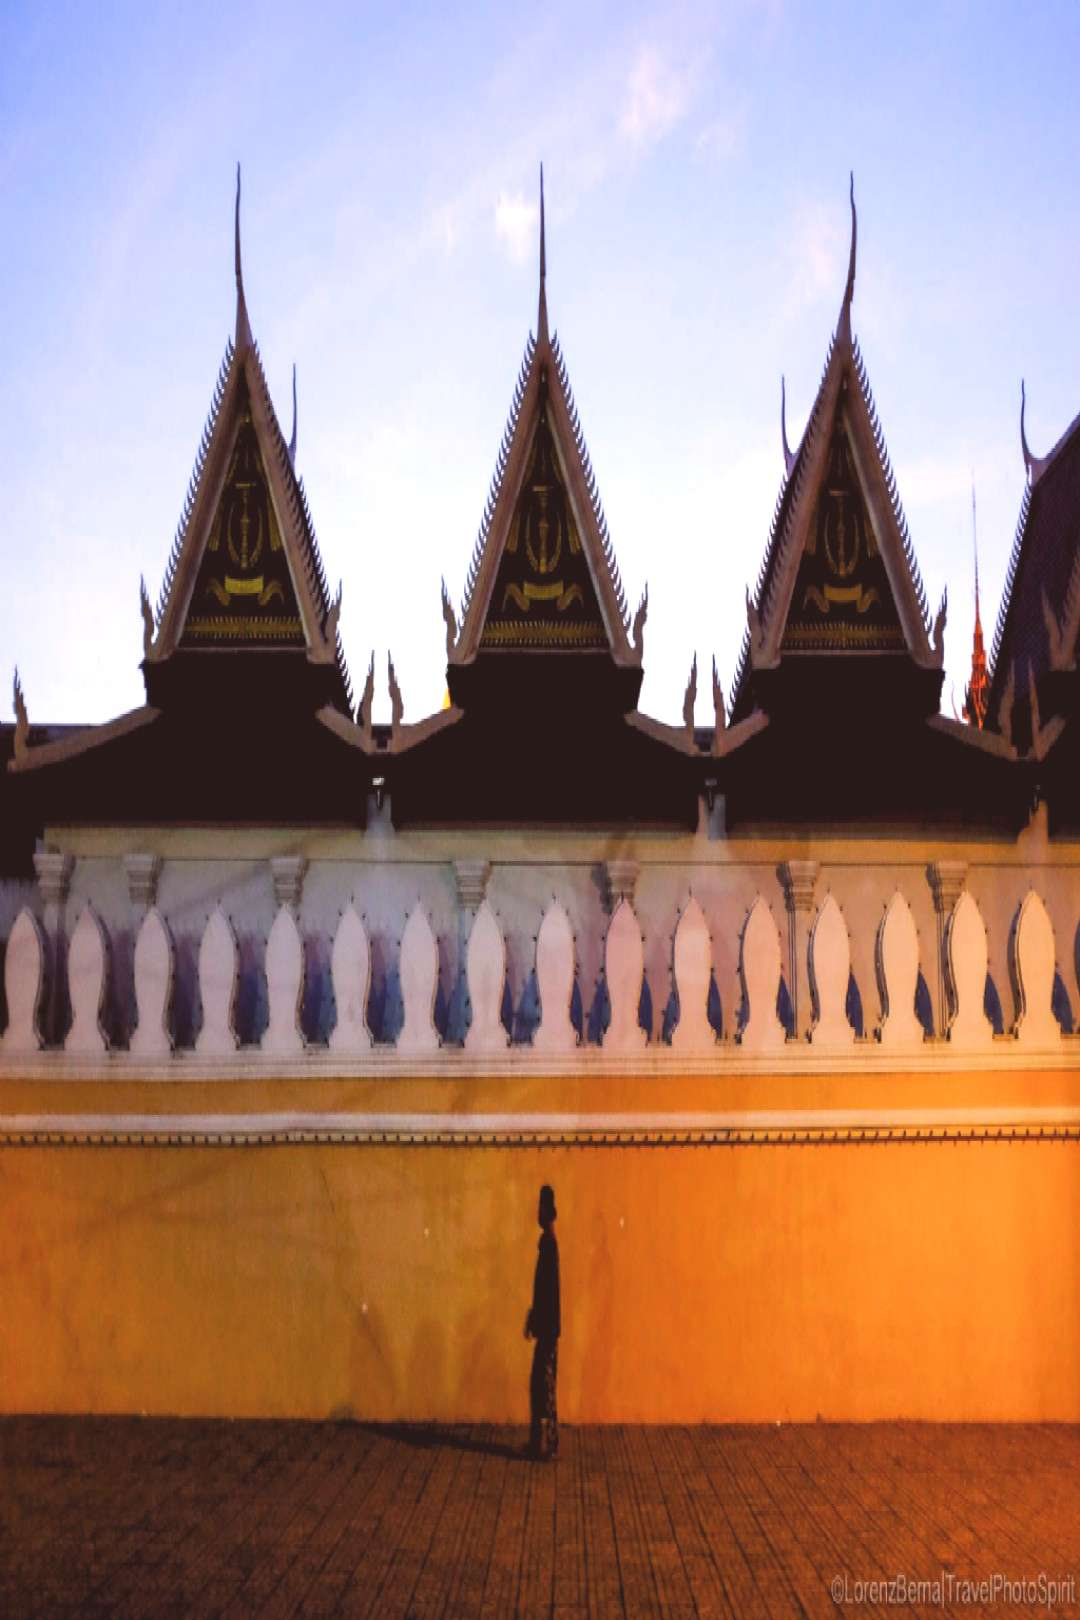 Evening walk alongside the Royal Palace, in Phnom Penh. Click to see full Phnom Penh Photo Gallery